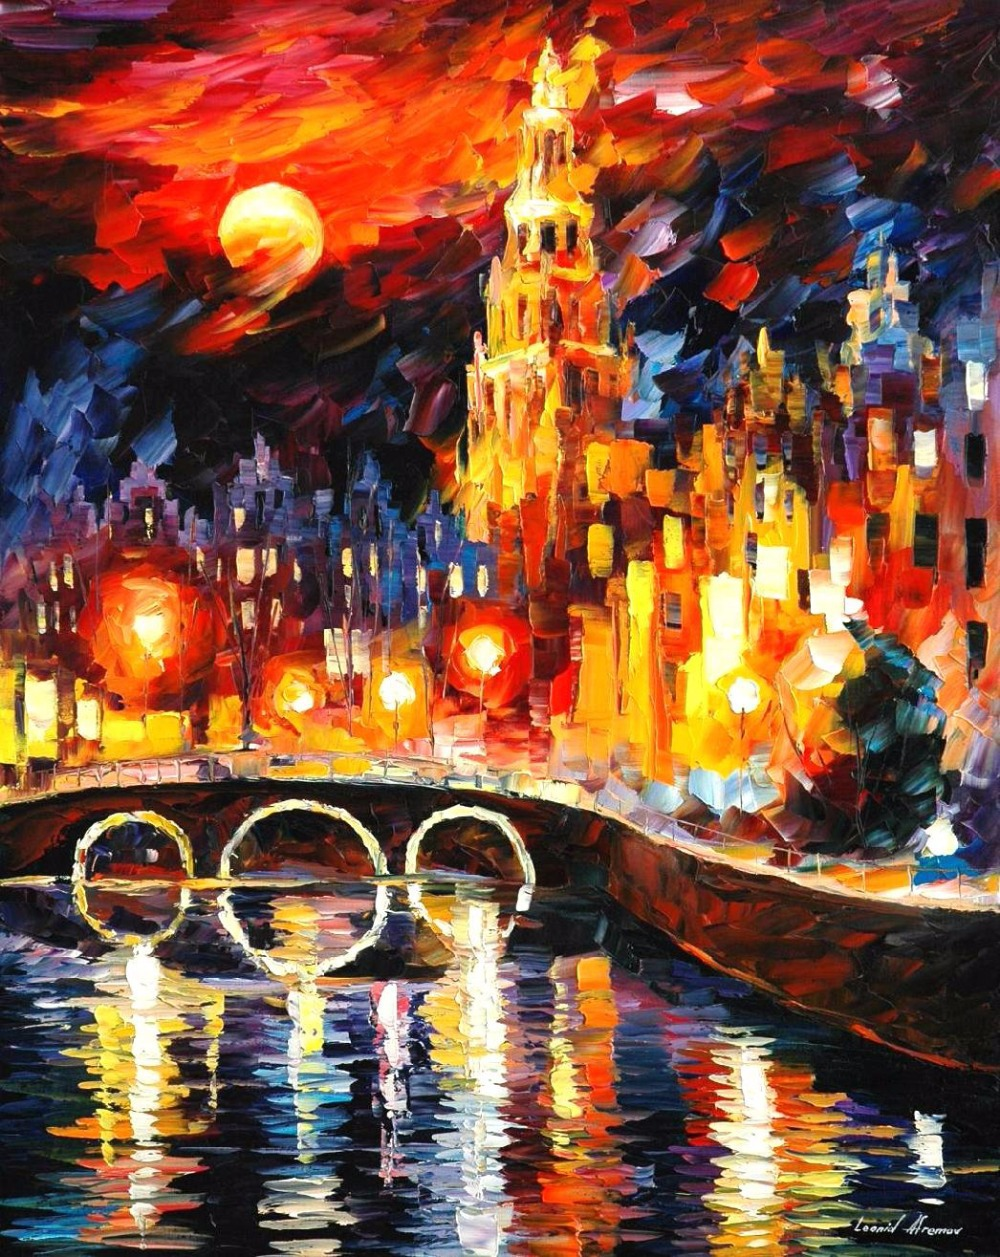 beautiful Painting Home Decor amsterdams magic Colorful oil paintings Canvas Abstract Modern Fine Art High quality Handmadebeautiful Painting Home Decor amsterdams magic Colorful oil paintings Canvas Abstract Modern Fine Art High quality Handmade